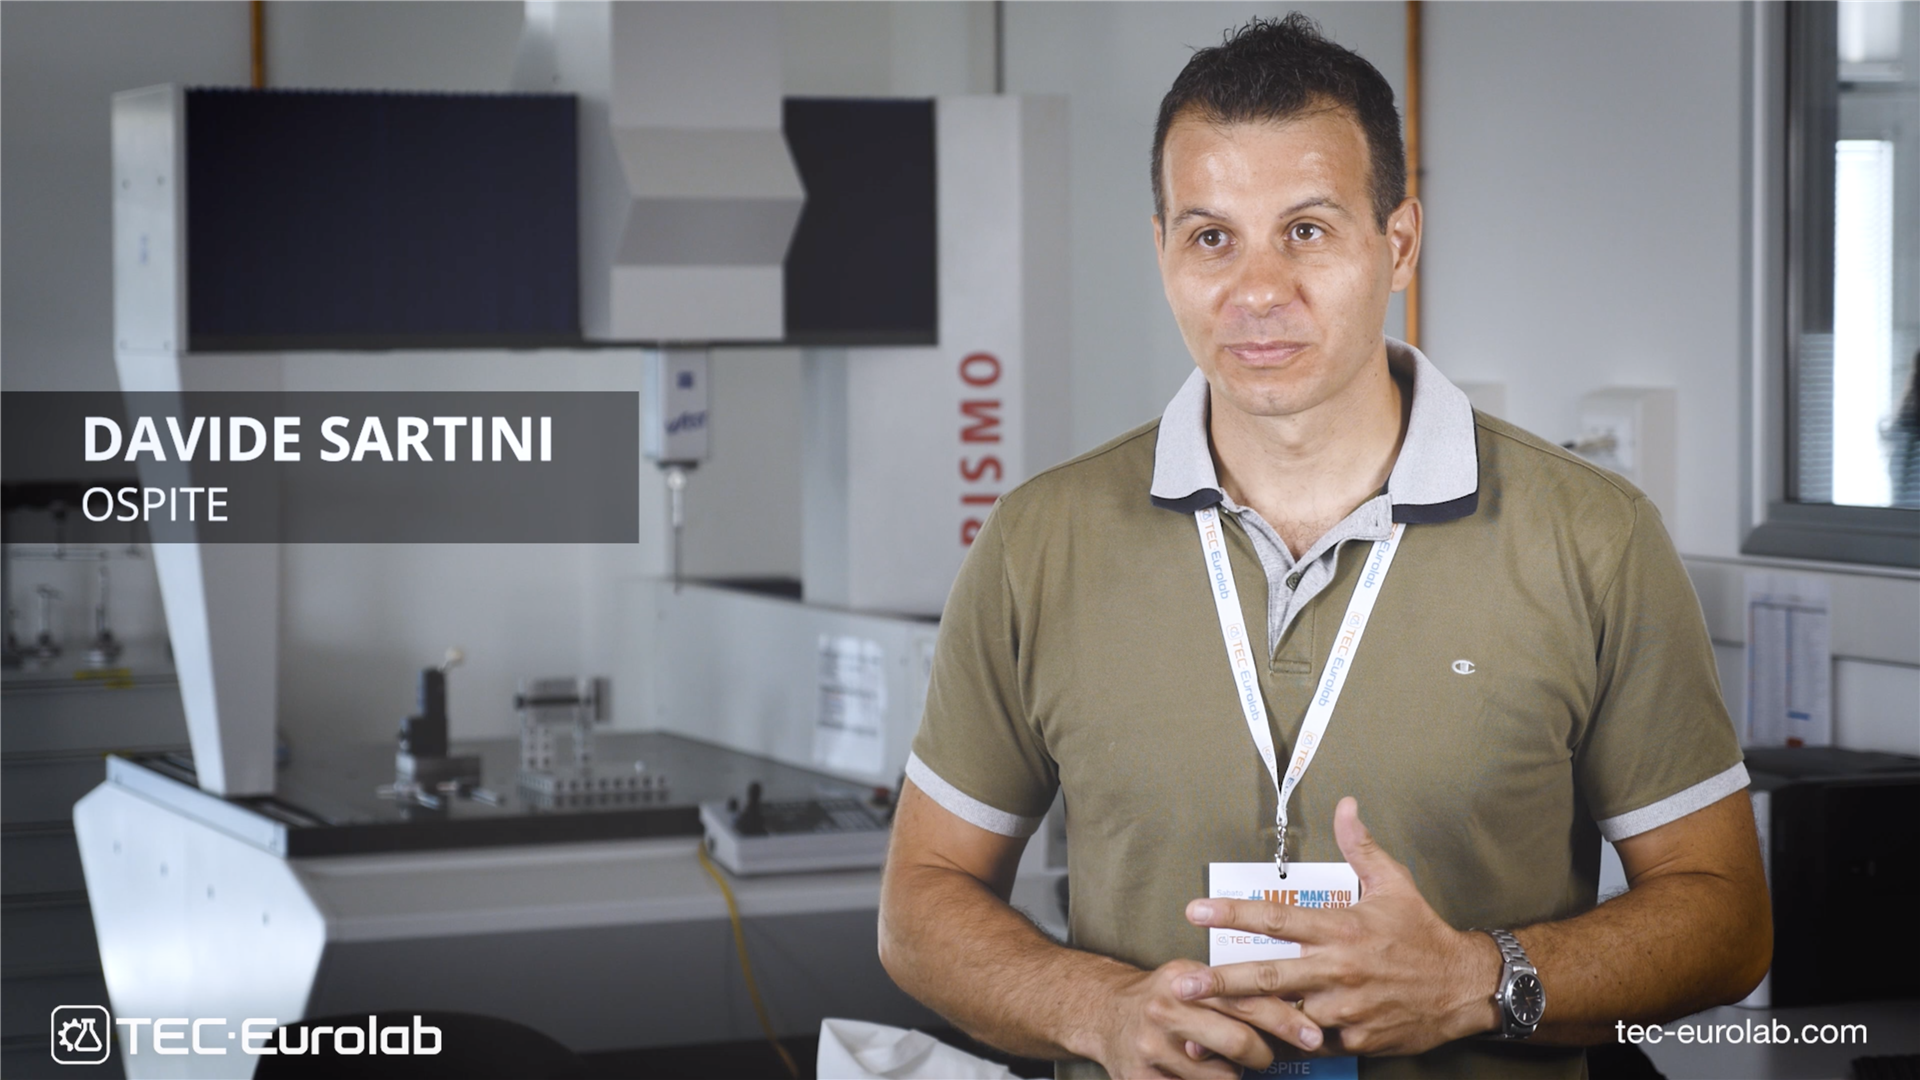 TEC Eurolab <br>Interview Davide Sartini - Open Day